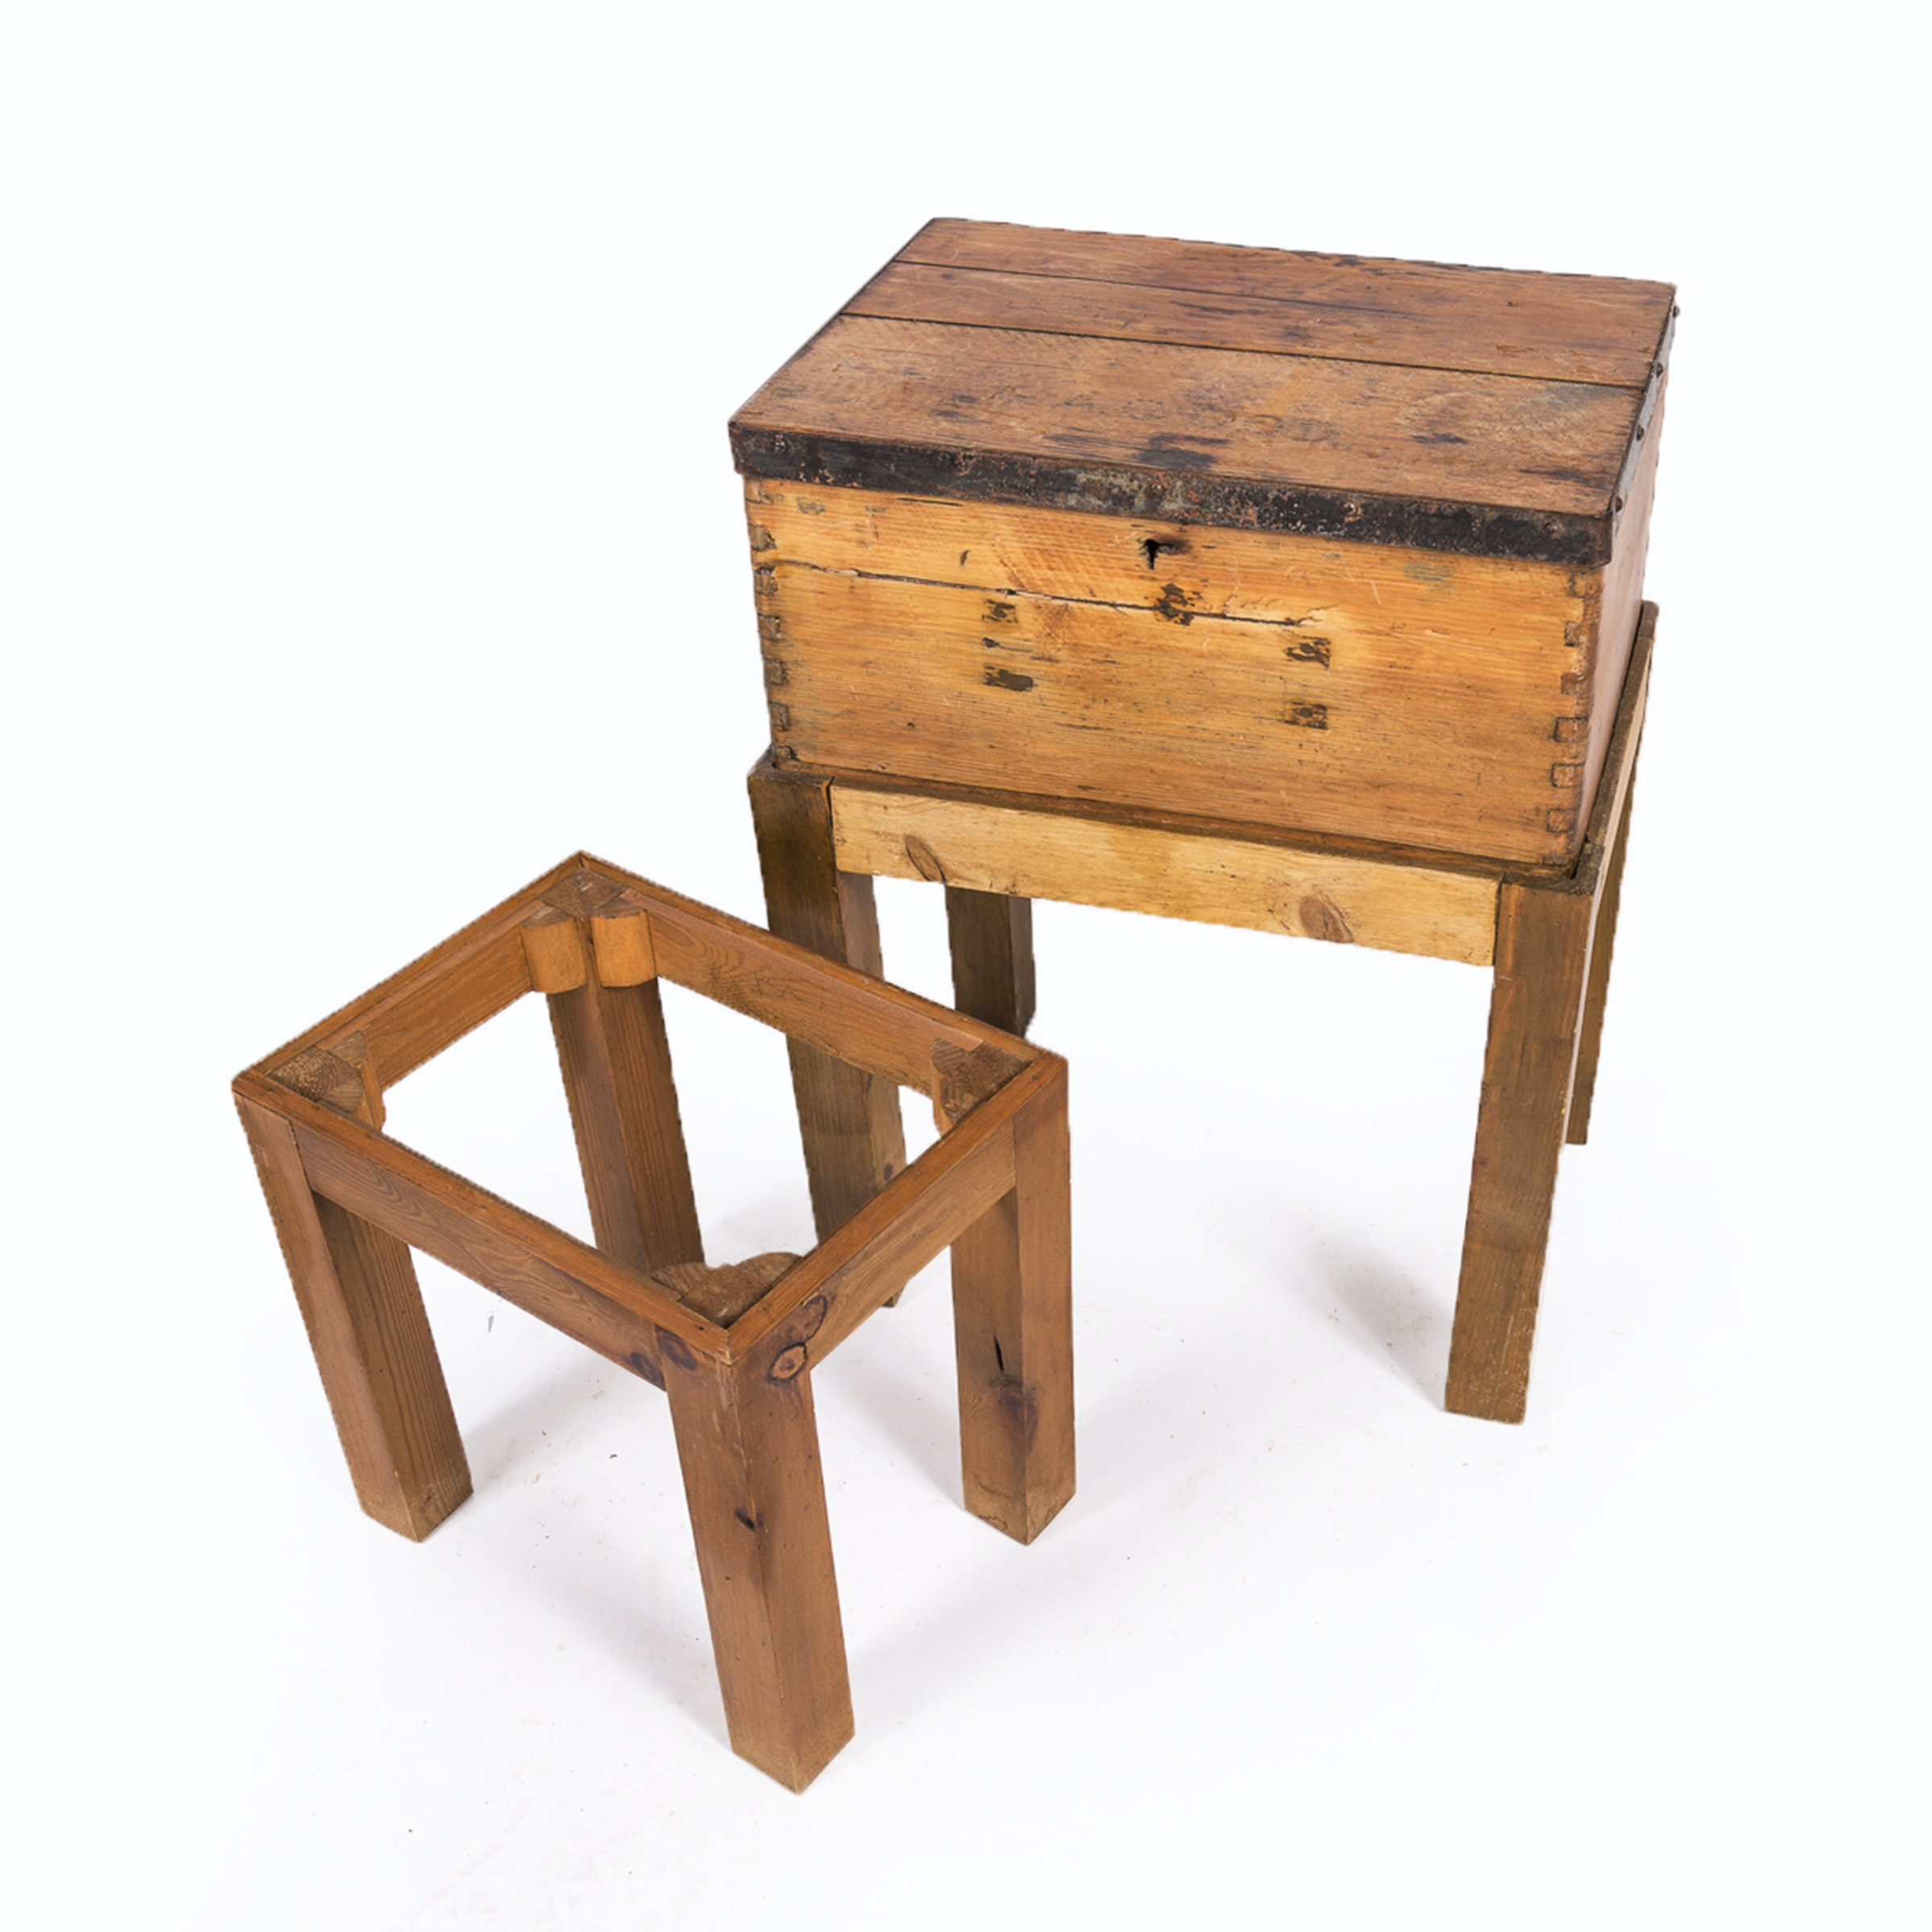 Antique Campaign Style Chest on Stand with Stand